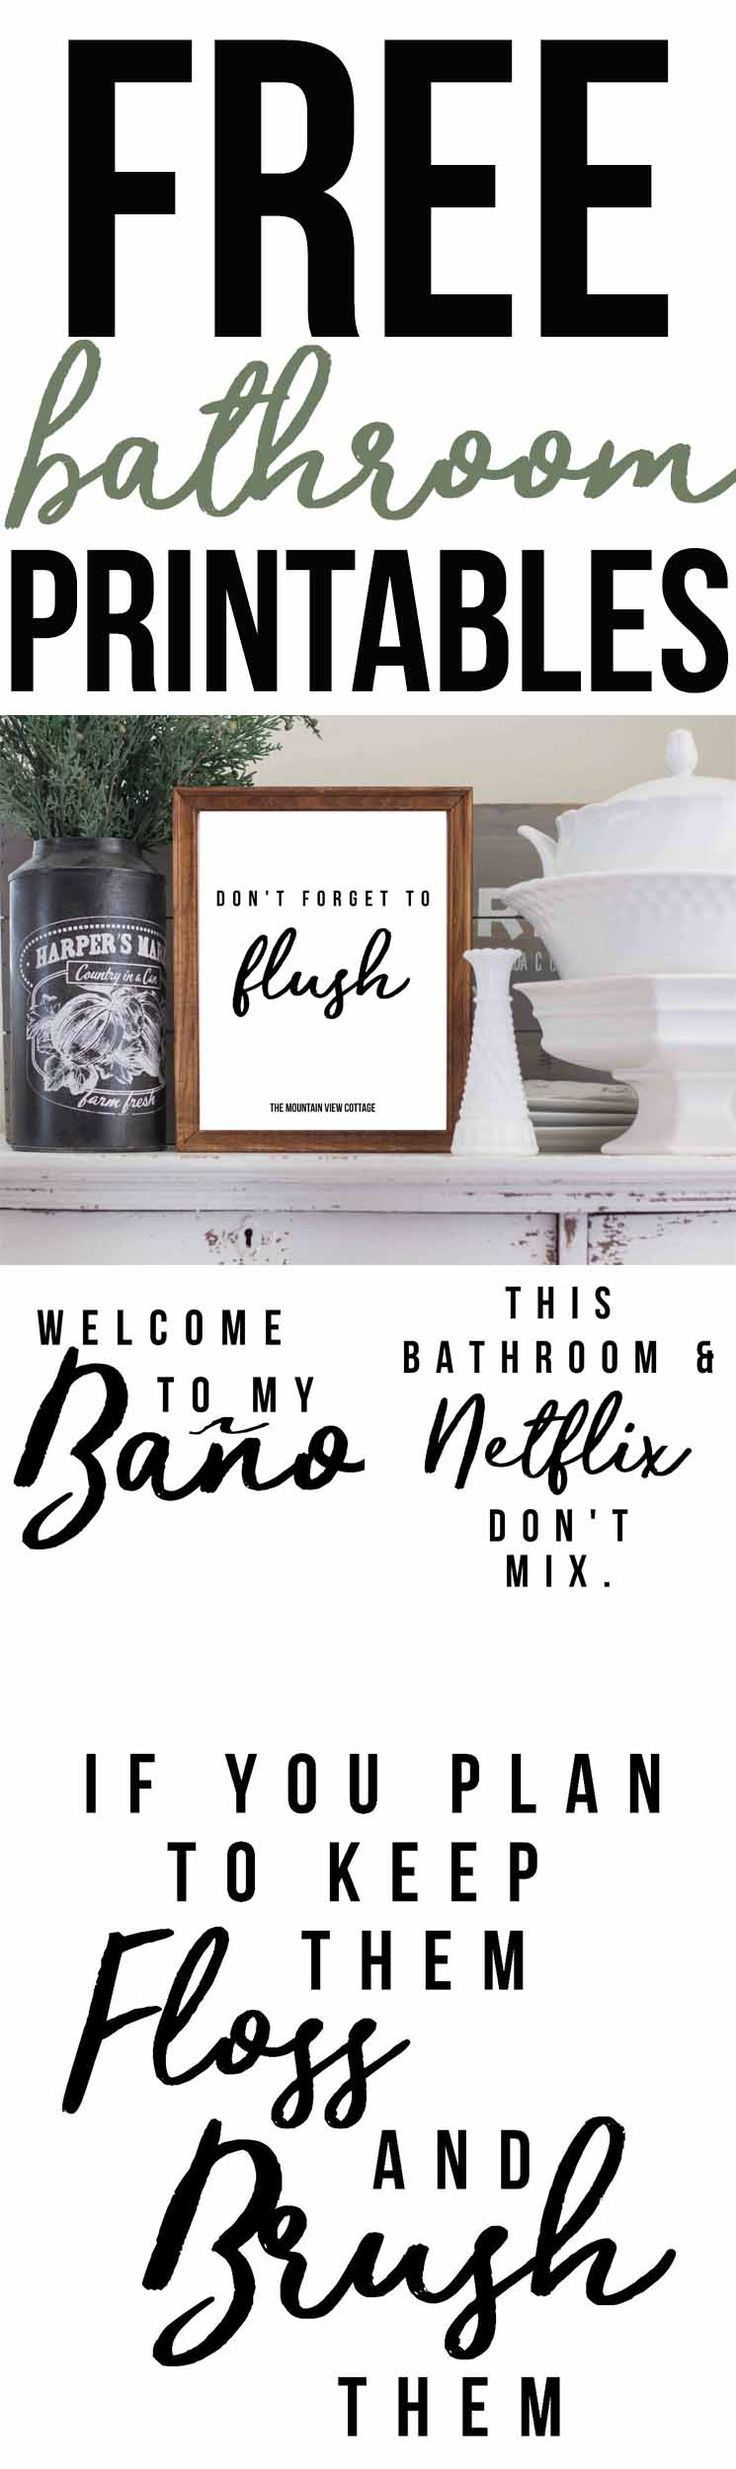 free bathroom printables-farmhouse printables | printables